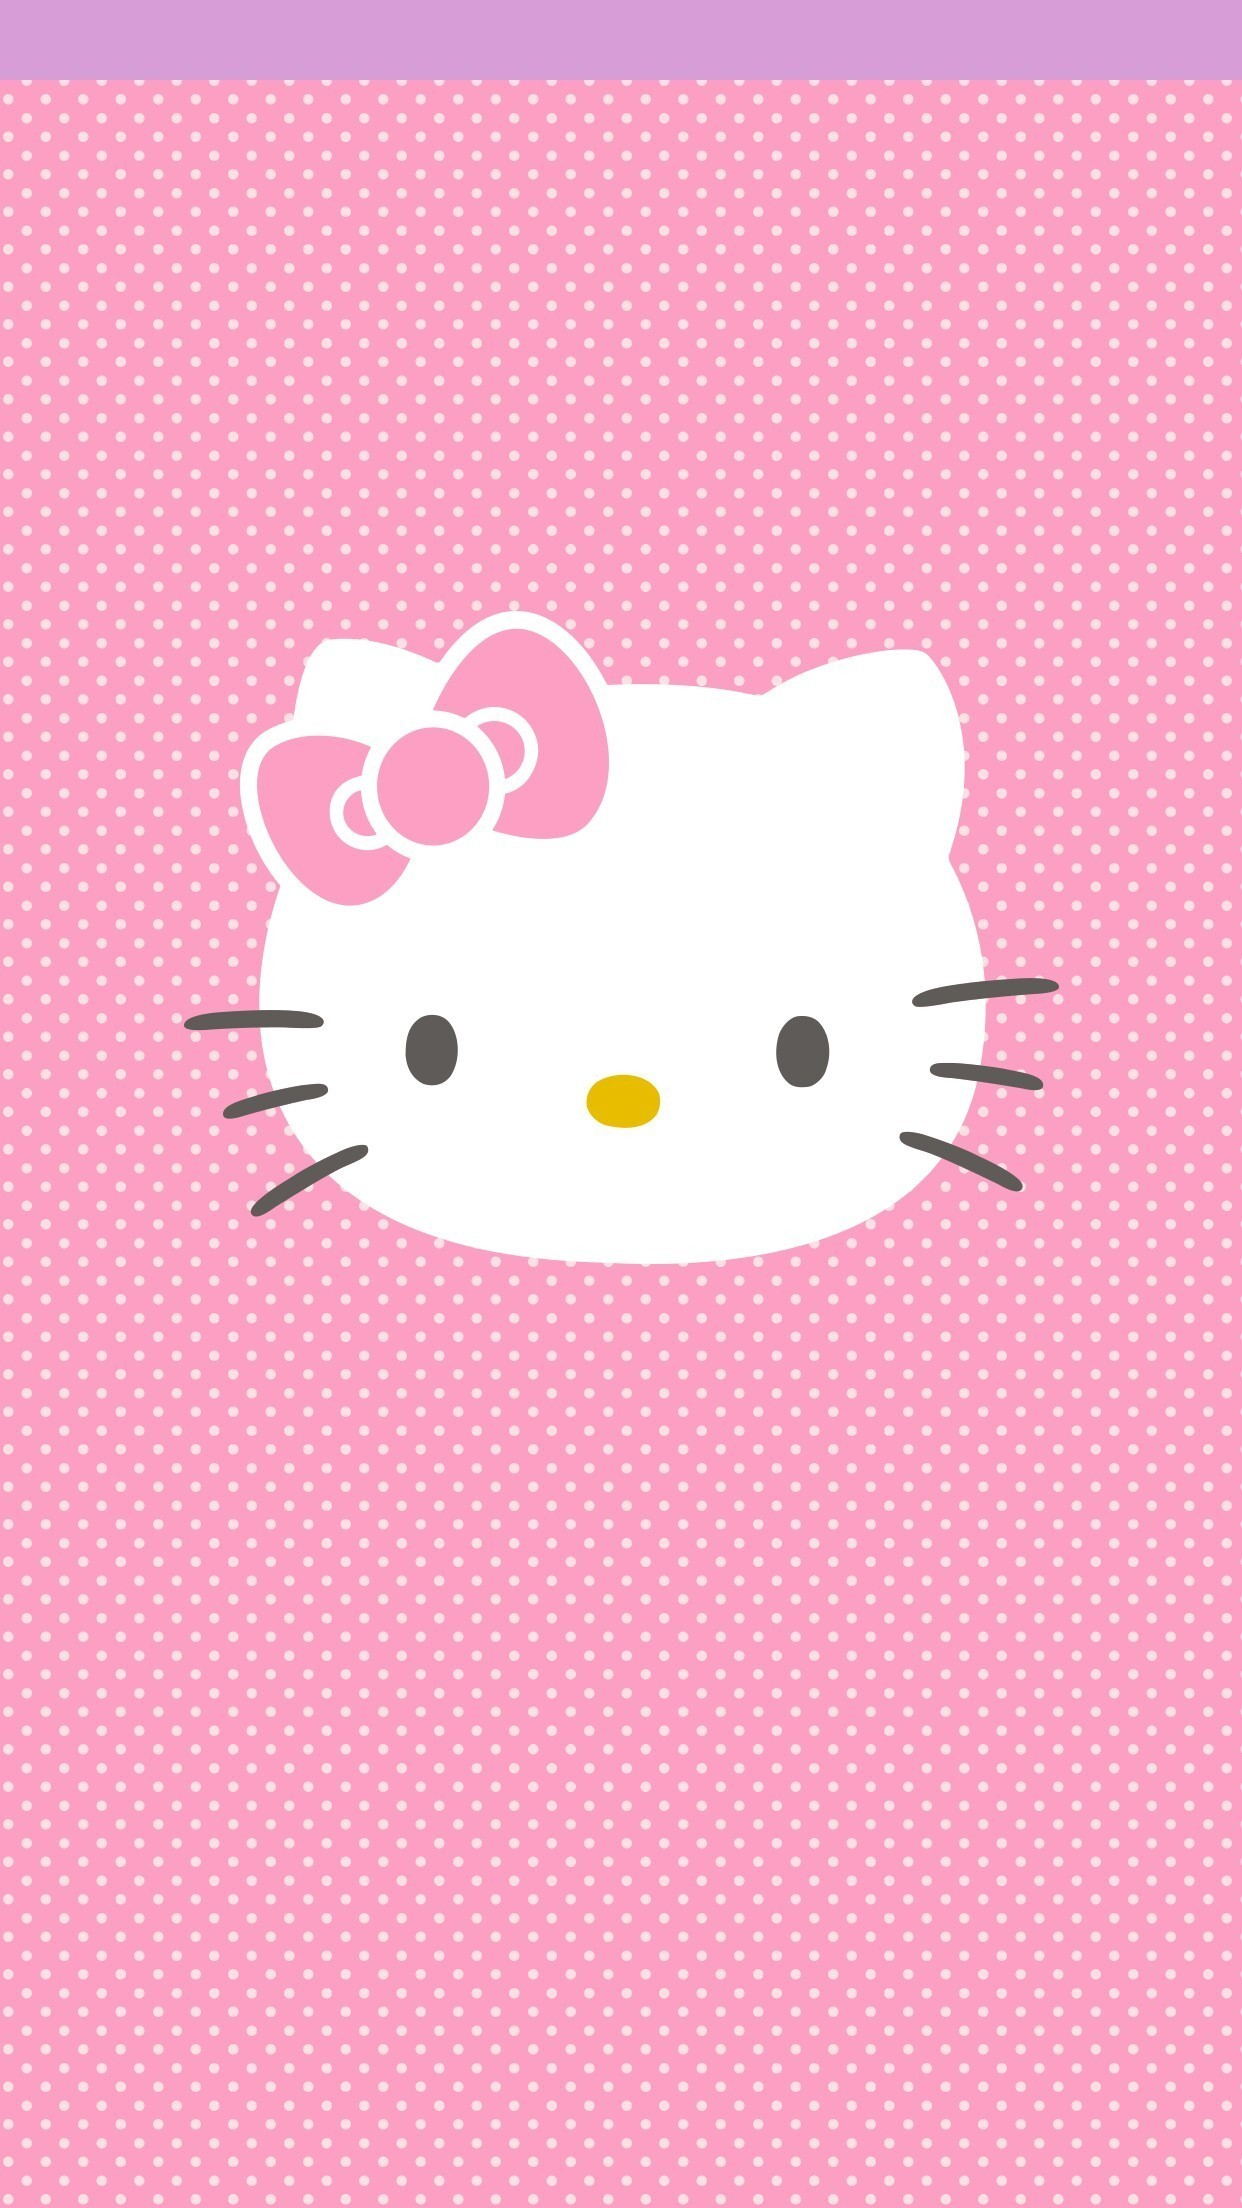 Free Download 65 Hello Kitty Wallpapers On Wallpaperplay